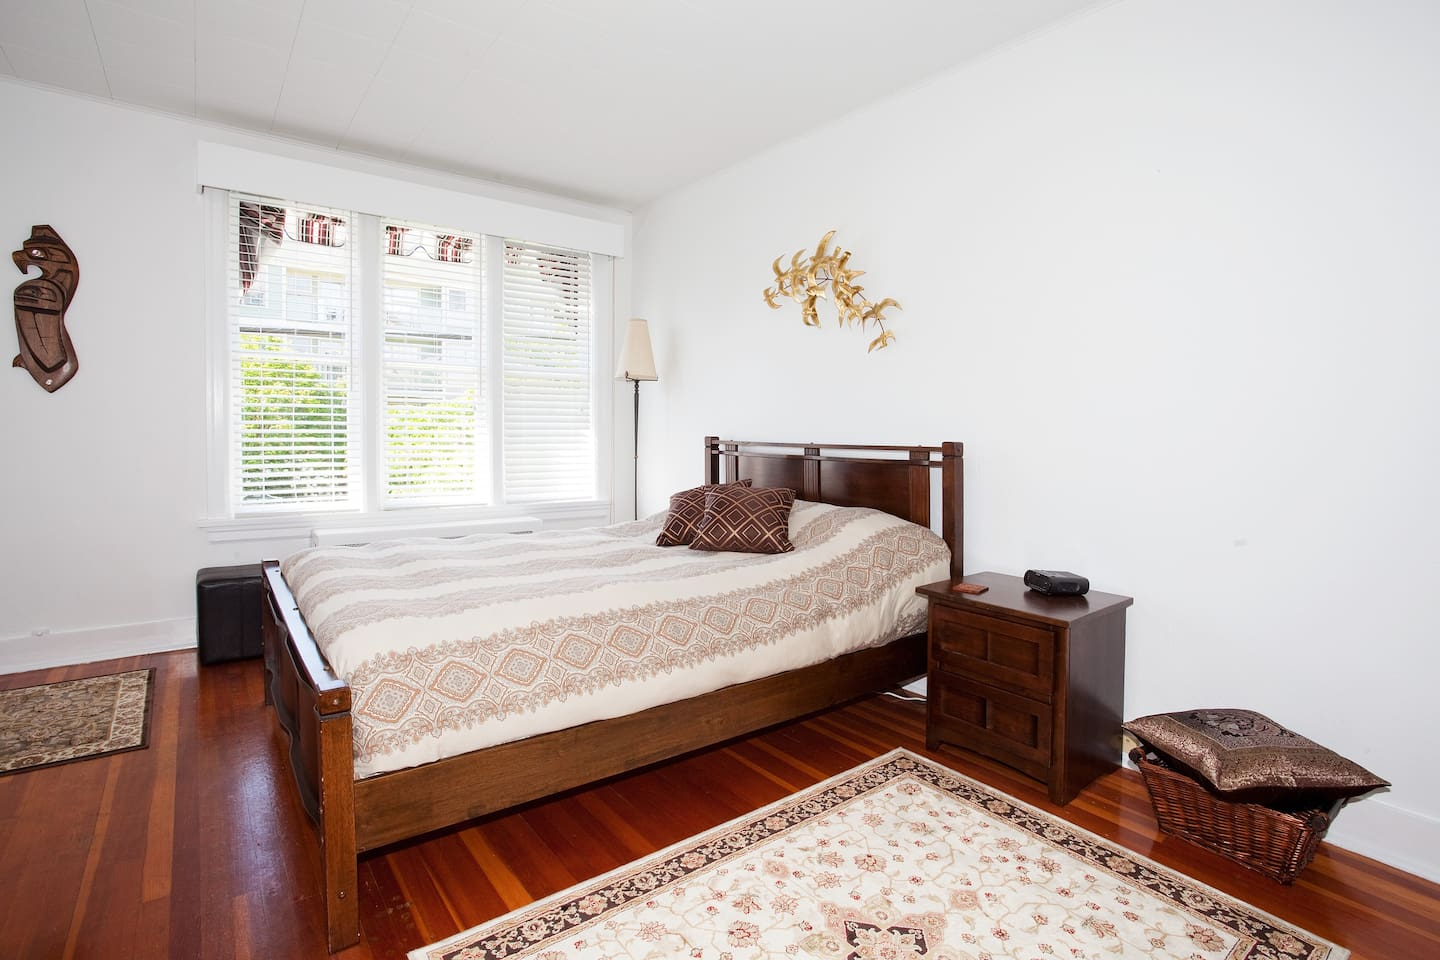 A very comfortable queen sized bed with hypo-allergenic comforter and pillows.